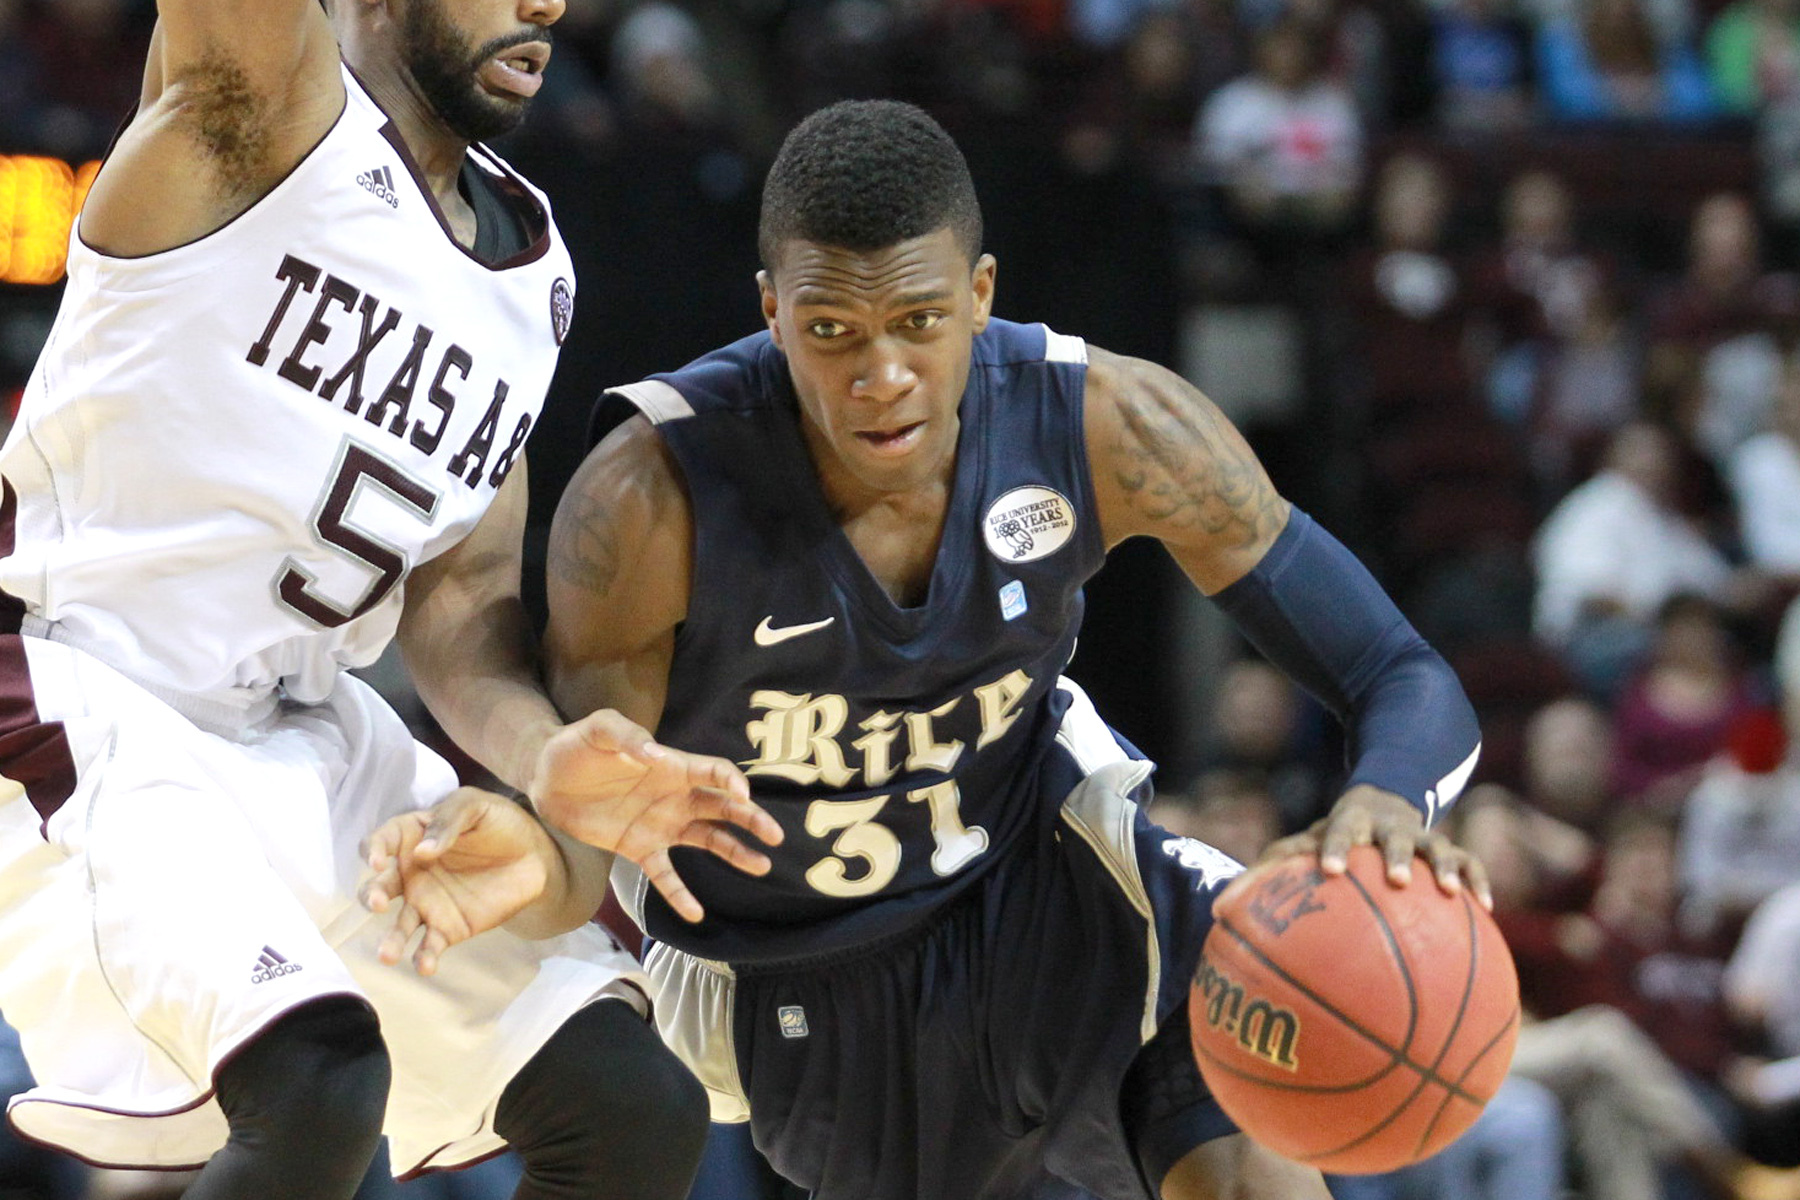 Dylan Ennis scored a game-high 18 points and had a career-high 10 rebounds in the Owls' game at Southern Miss.